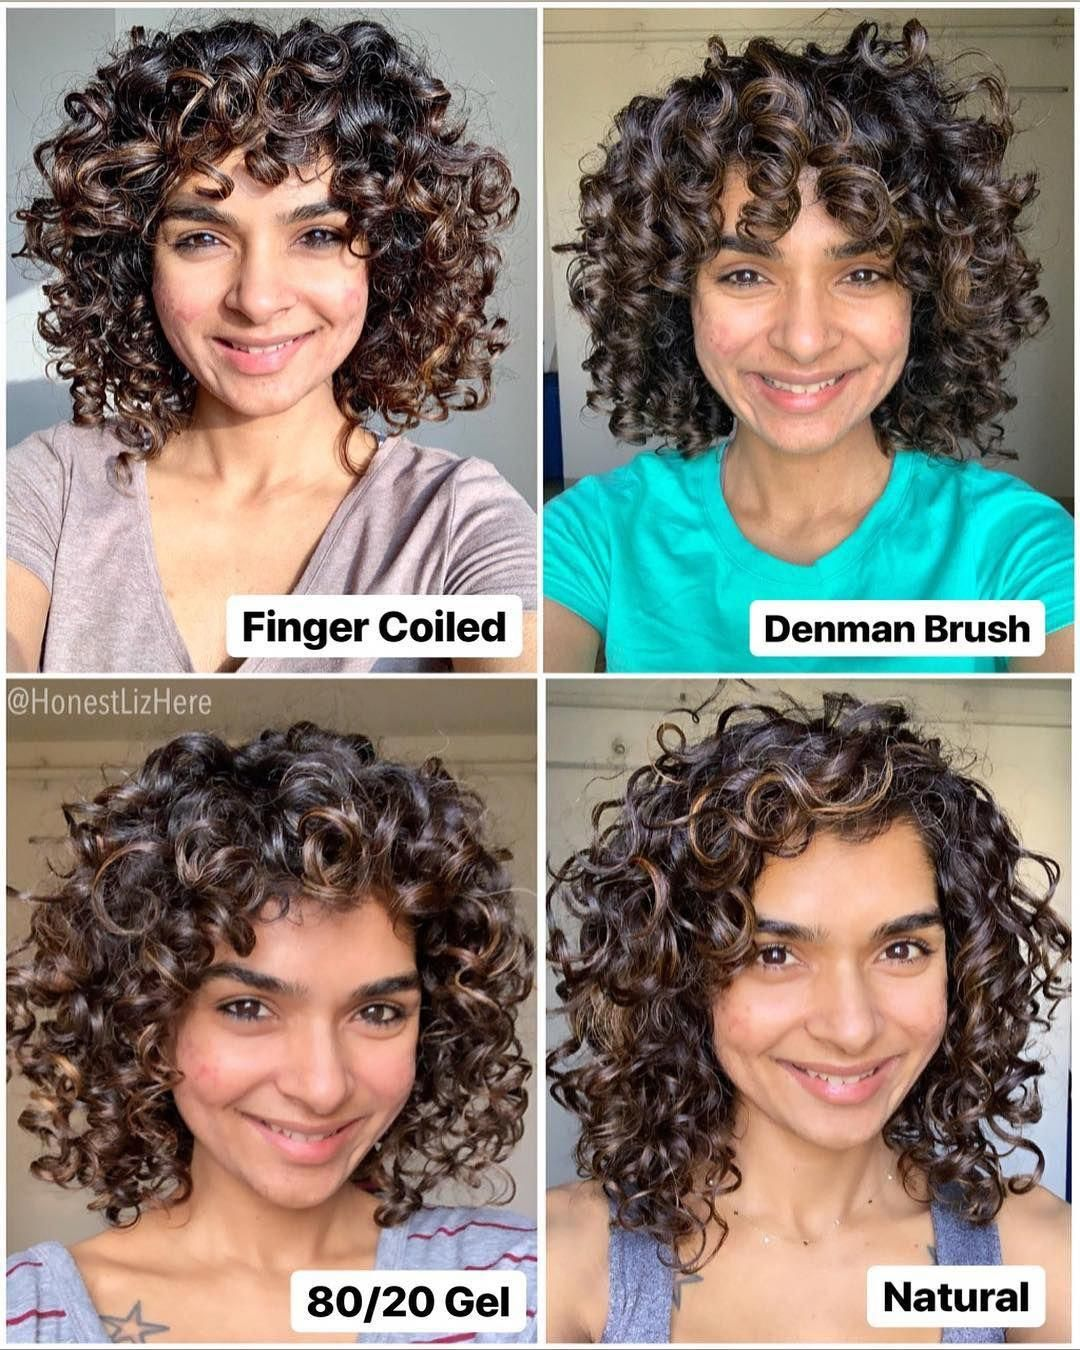 When I Was Looking For Something To Help Form Curl Clumps There It Was Learn How Denman Brush H Curly Hair Styles Naturally Curly Hair Tips Curly Hair Styles